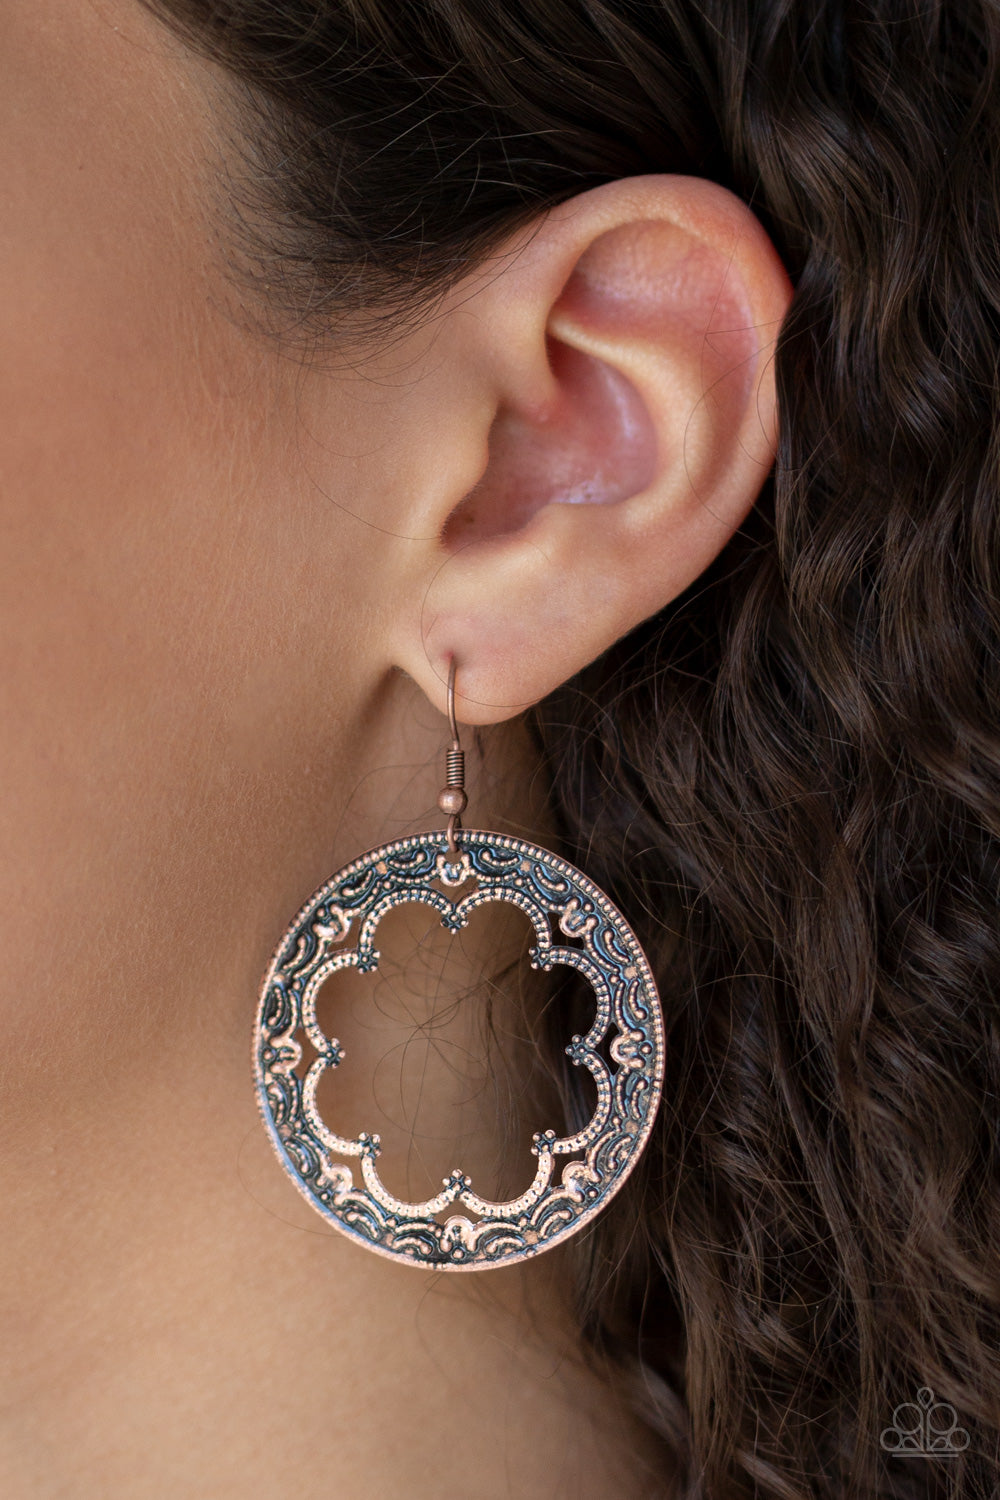 Paparazzi - Whimsical Wheelhouse - Copper Earrings - Classy Jewels by Linda